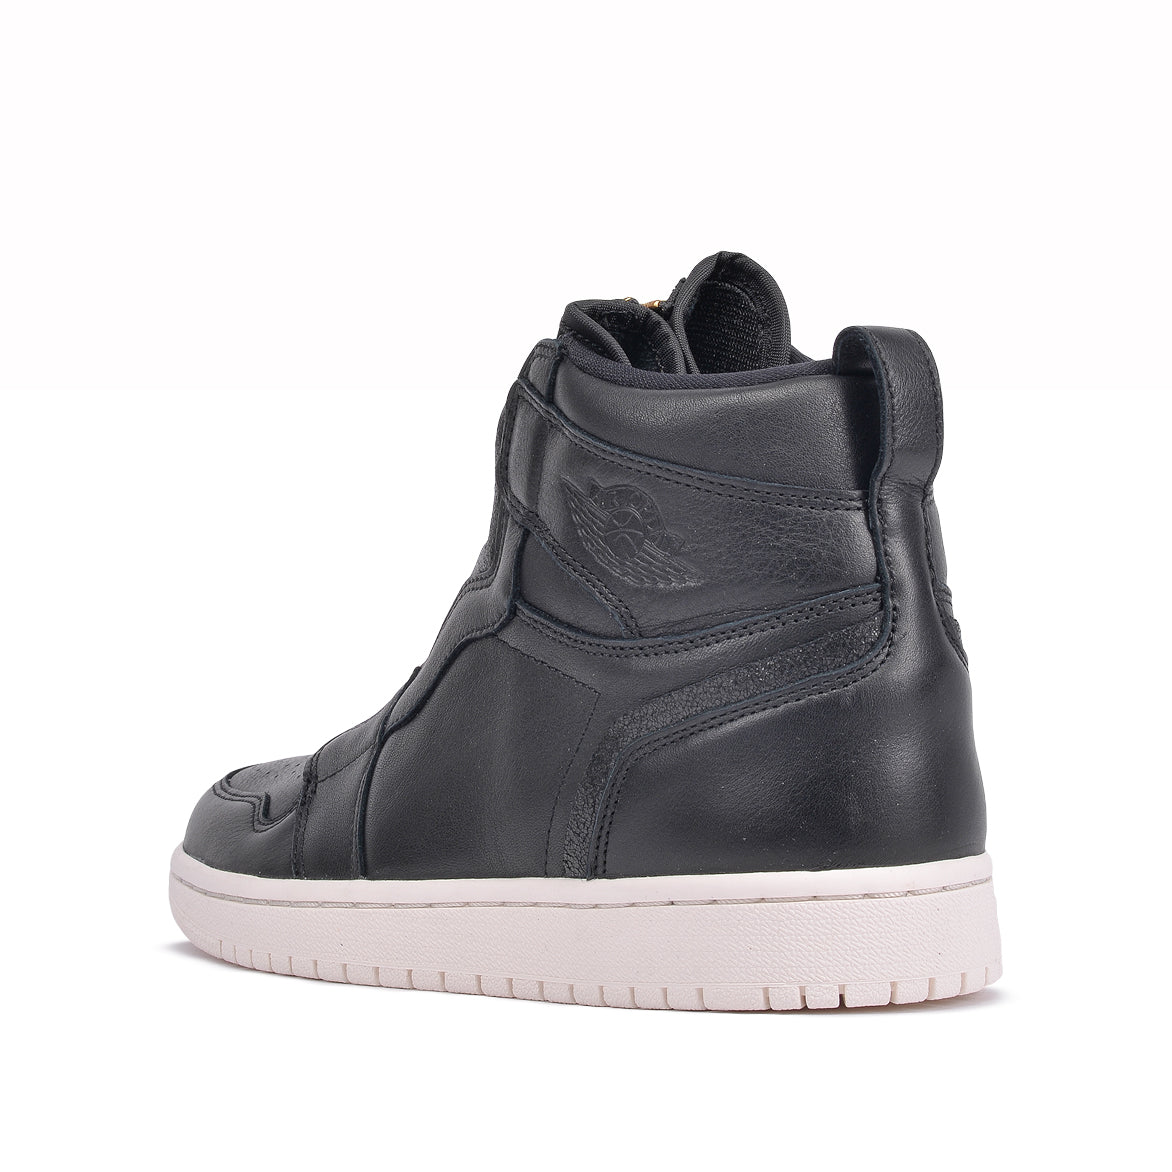 WMNS AIR JORDAN 1 HIGH ZIP - BLACK / SAIL